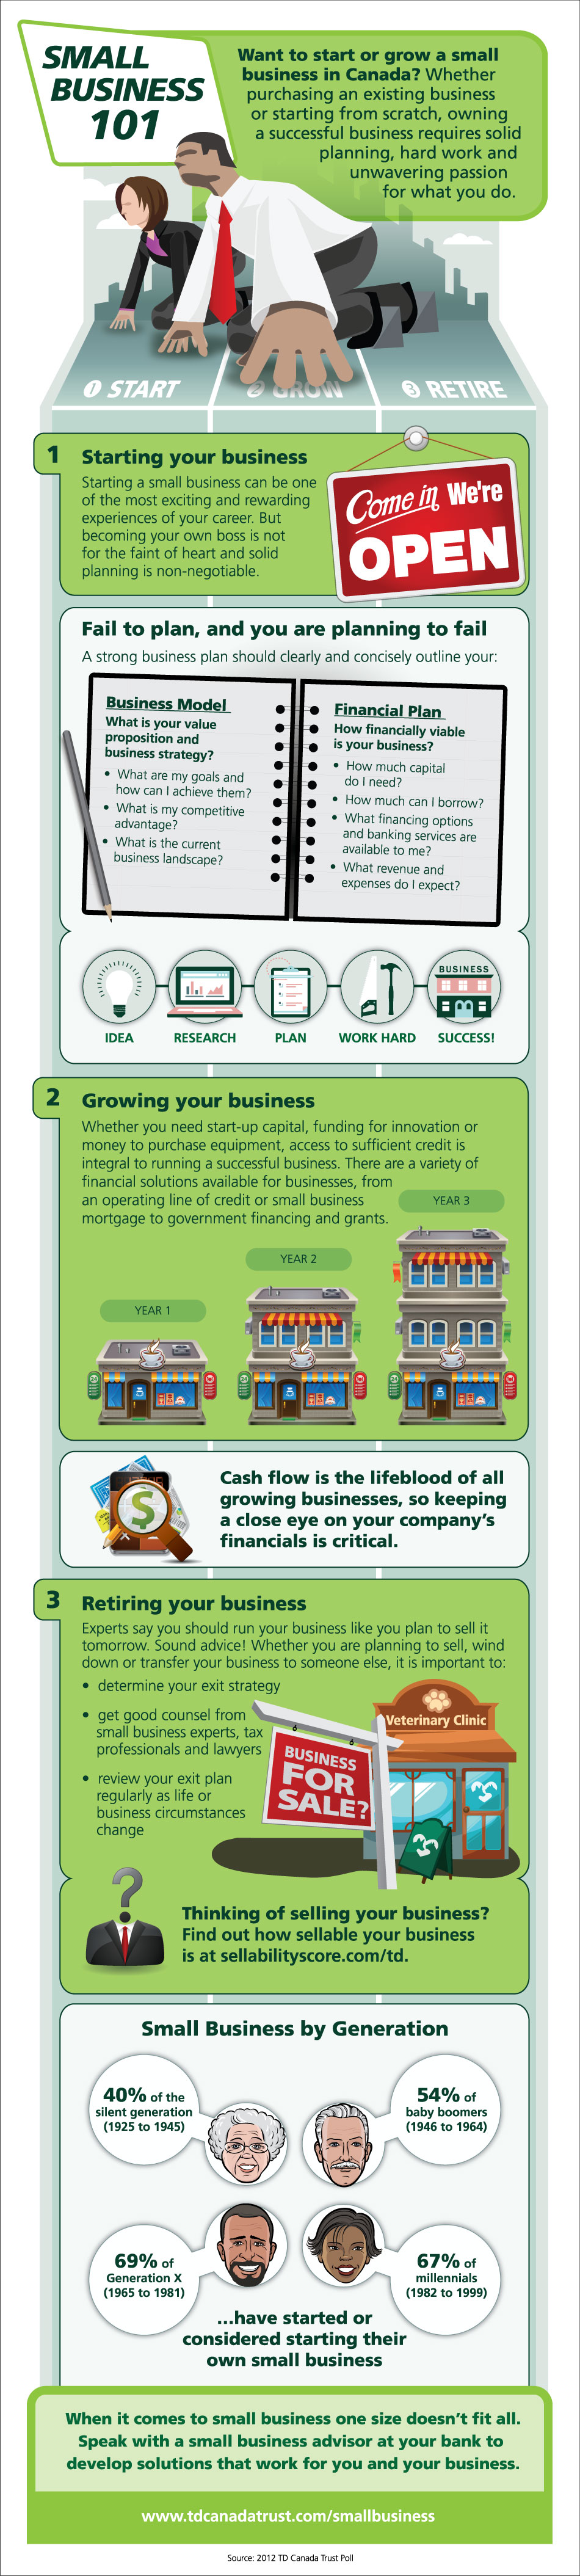 Small+Business+Finances+101+-+TD+Canada+Trust+infographic